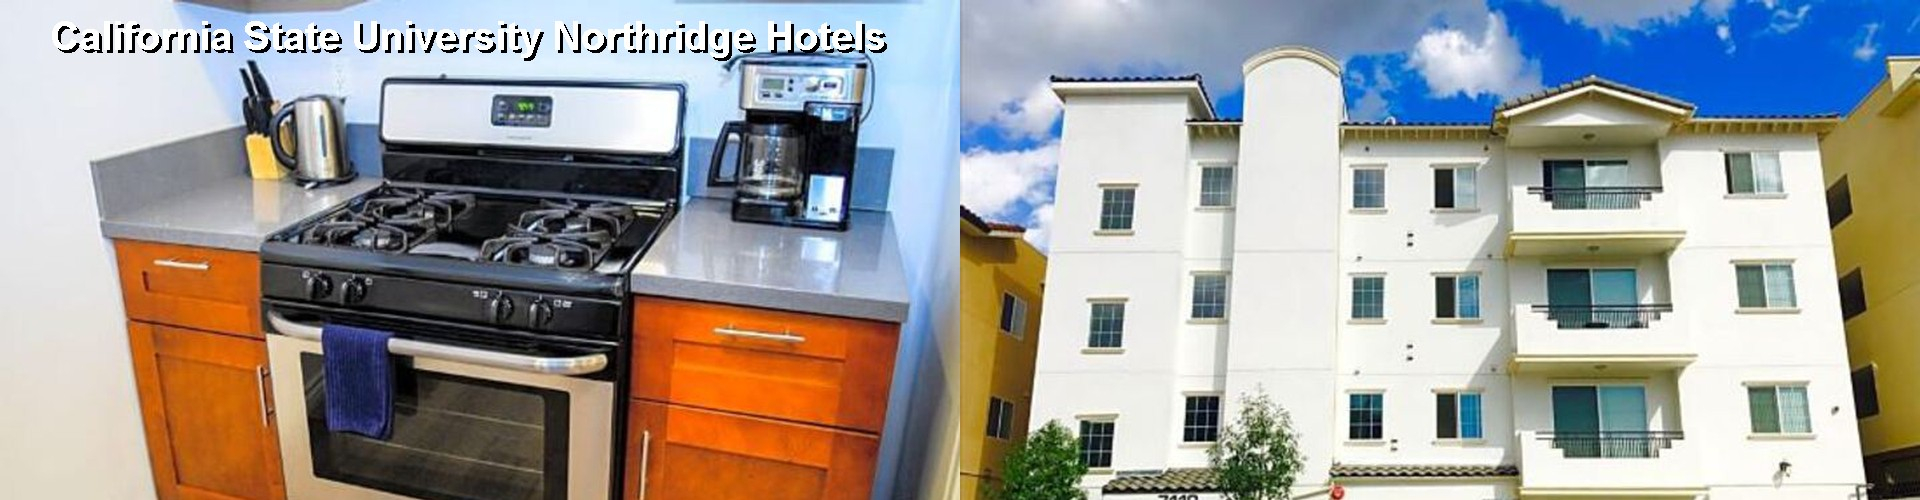 5 Best Hotels near California State University Northridge